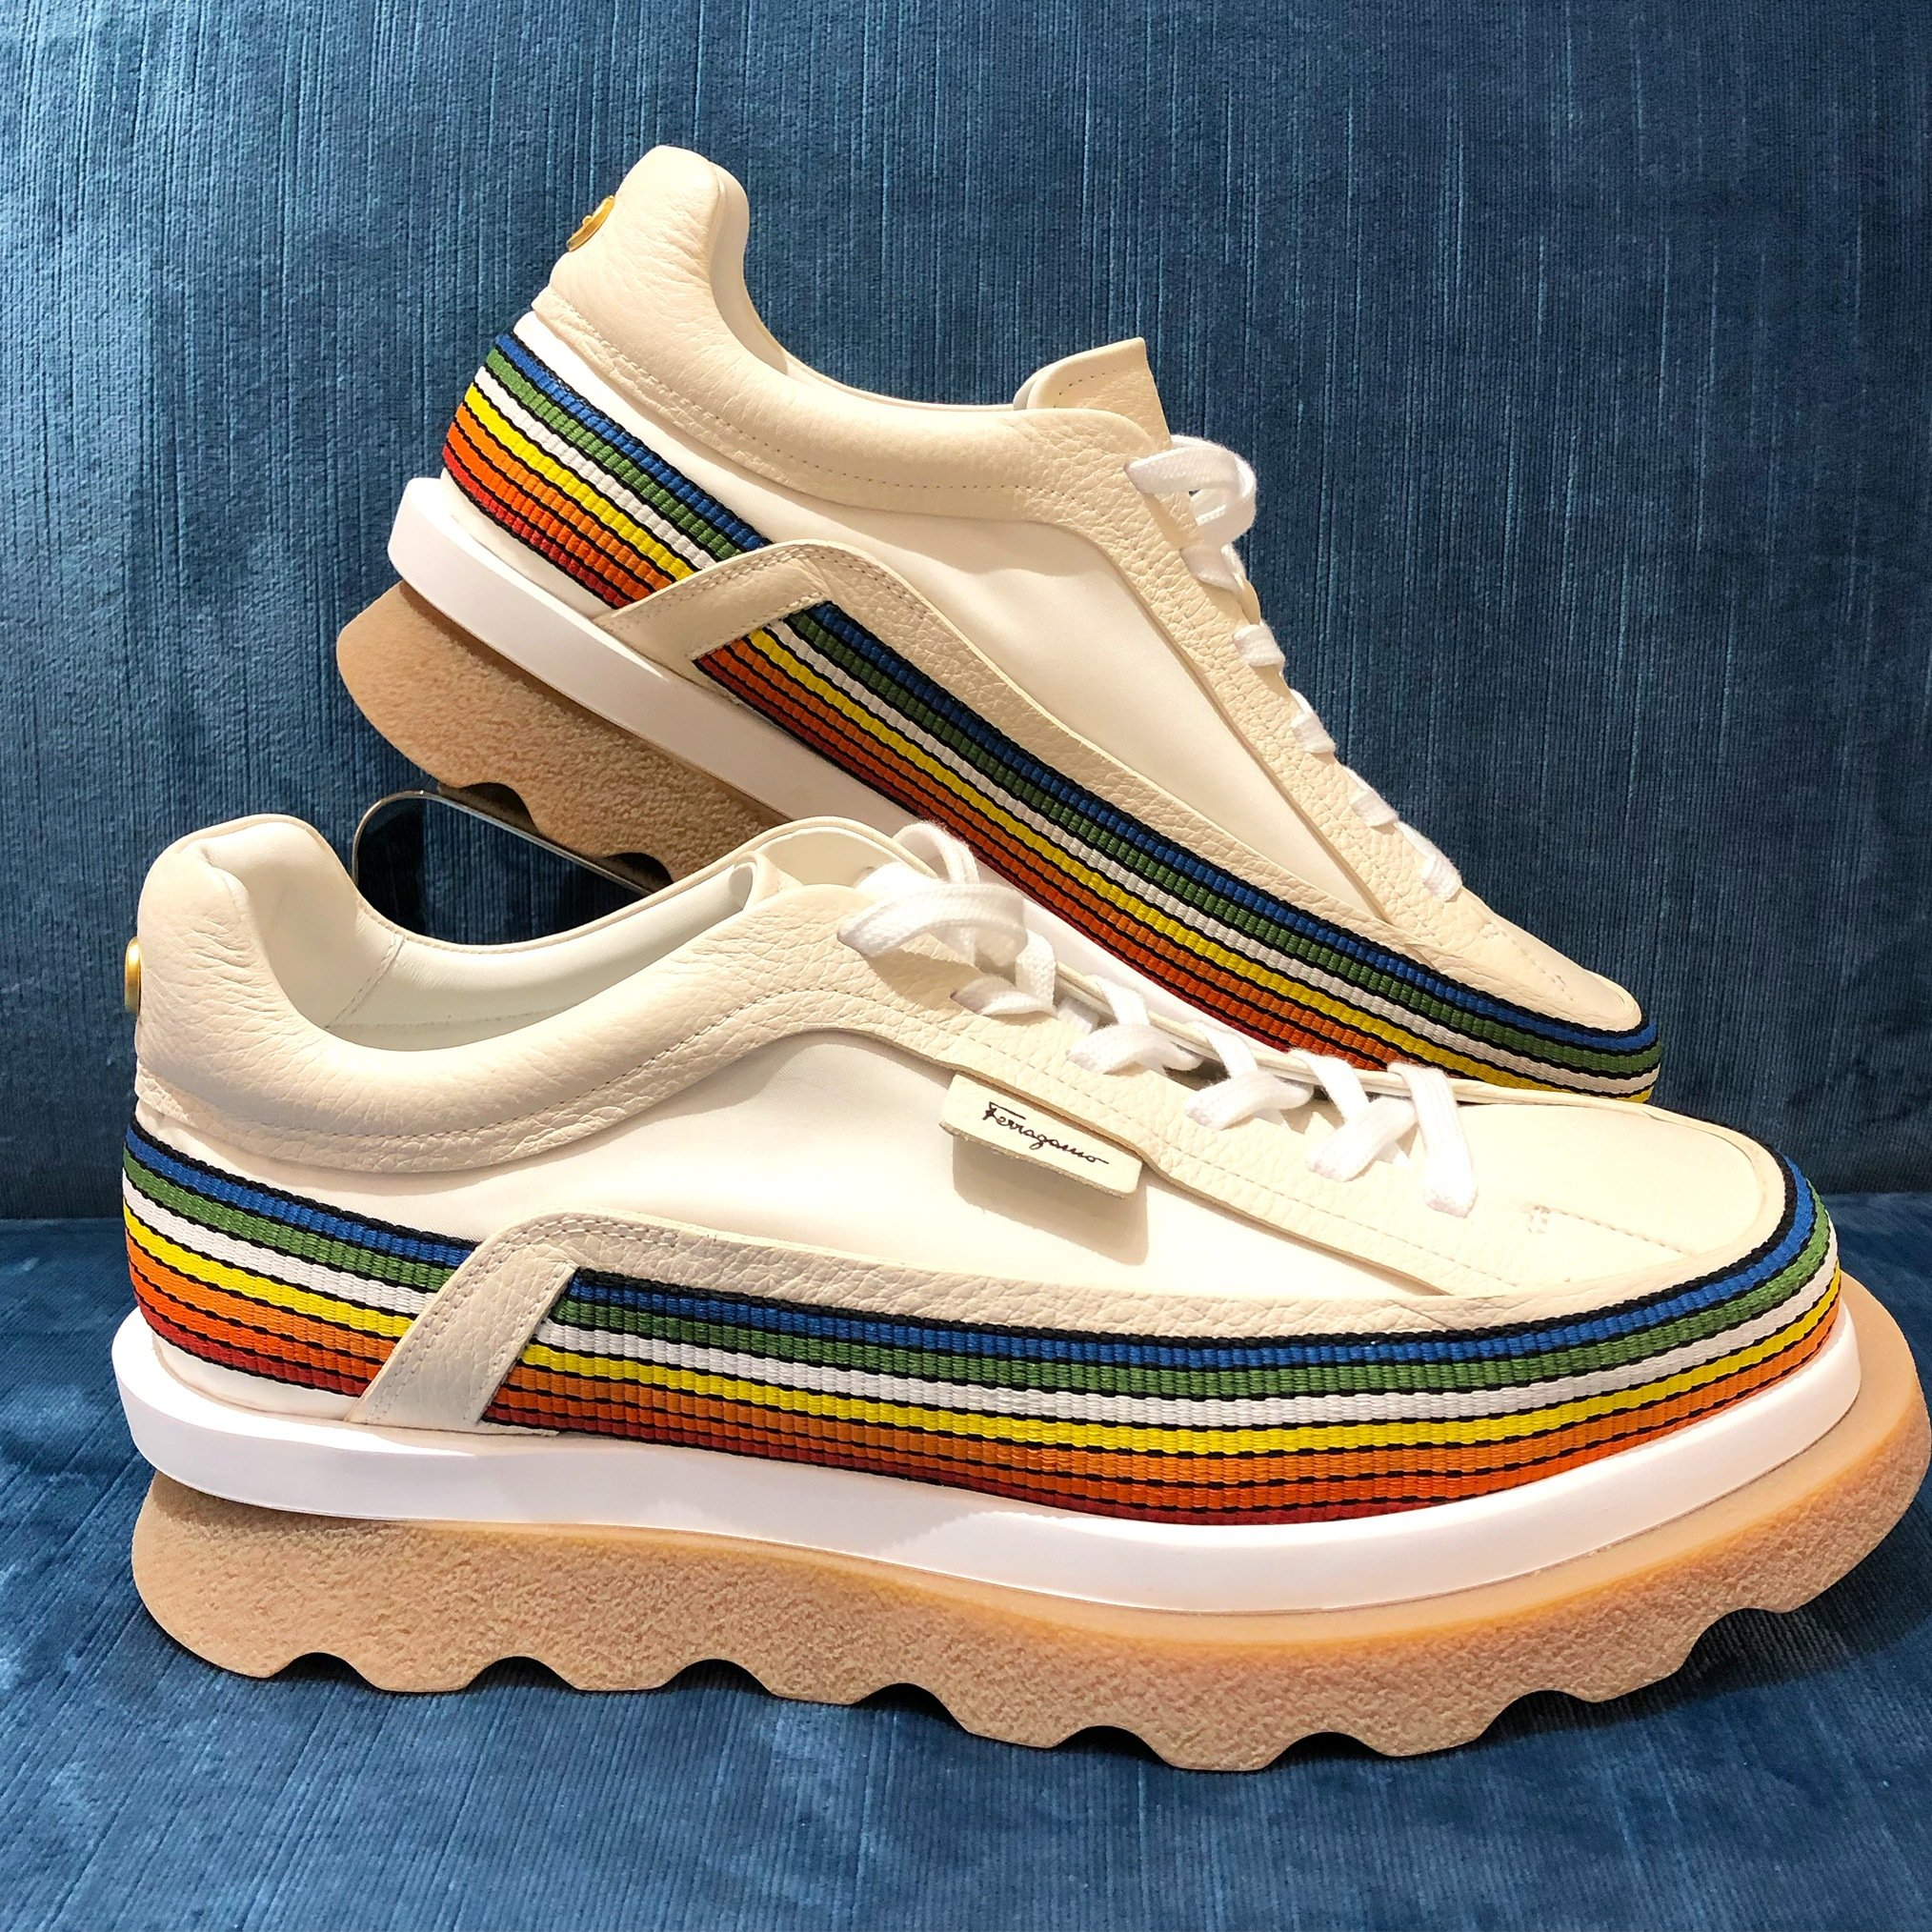 Salvatore Ferragamo Sustainable Thinking Sneaker is set on a thick rubber sole, they are adorned with rainbow pattern